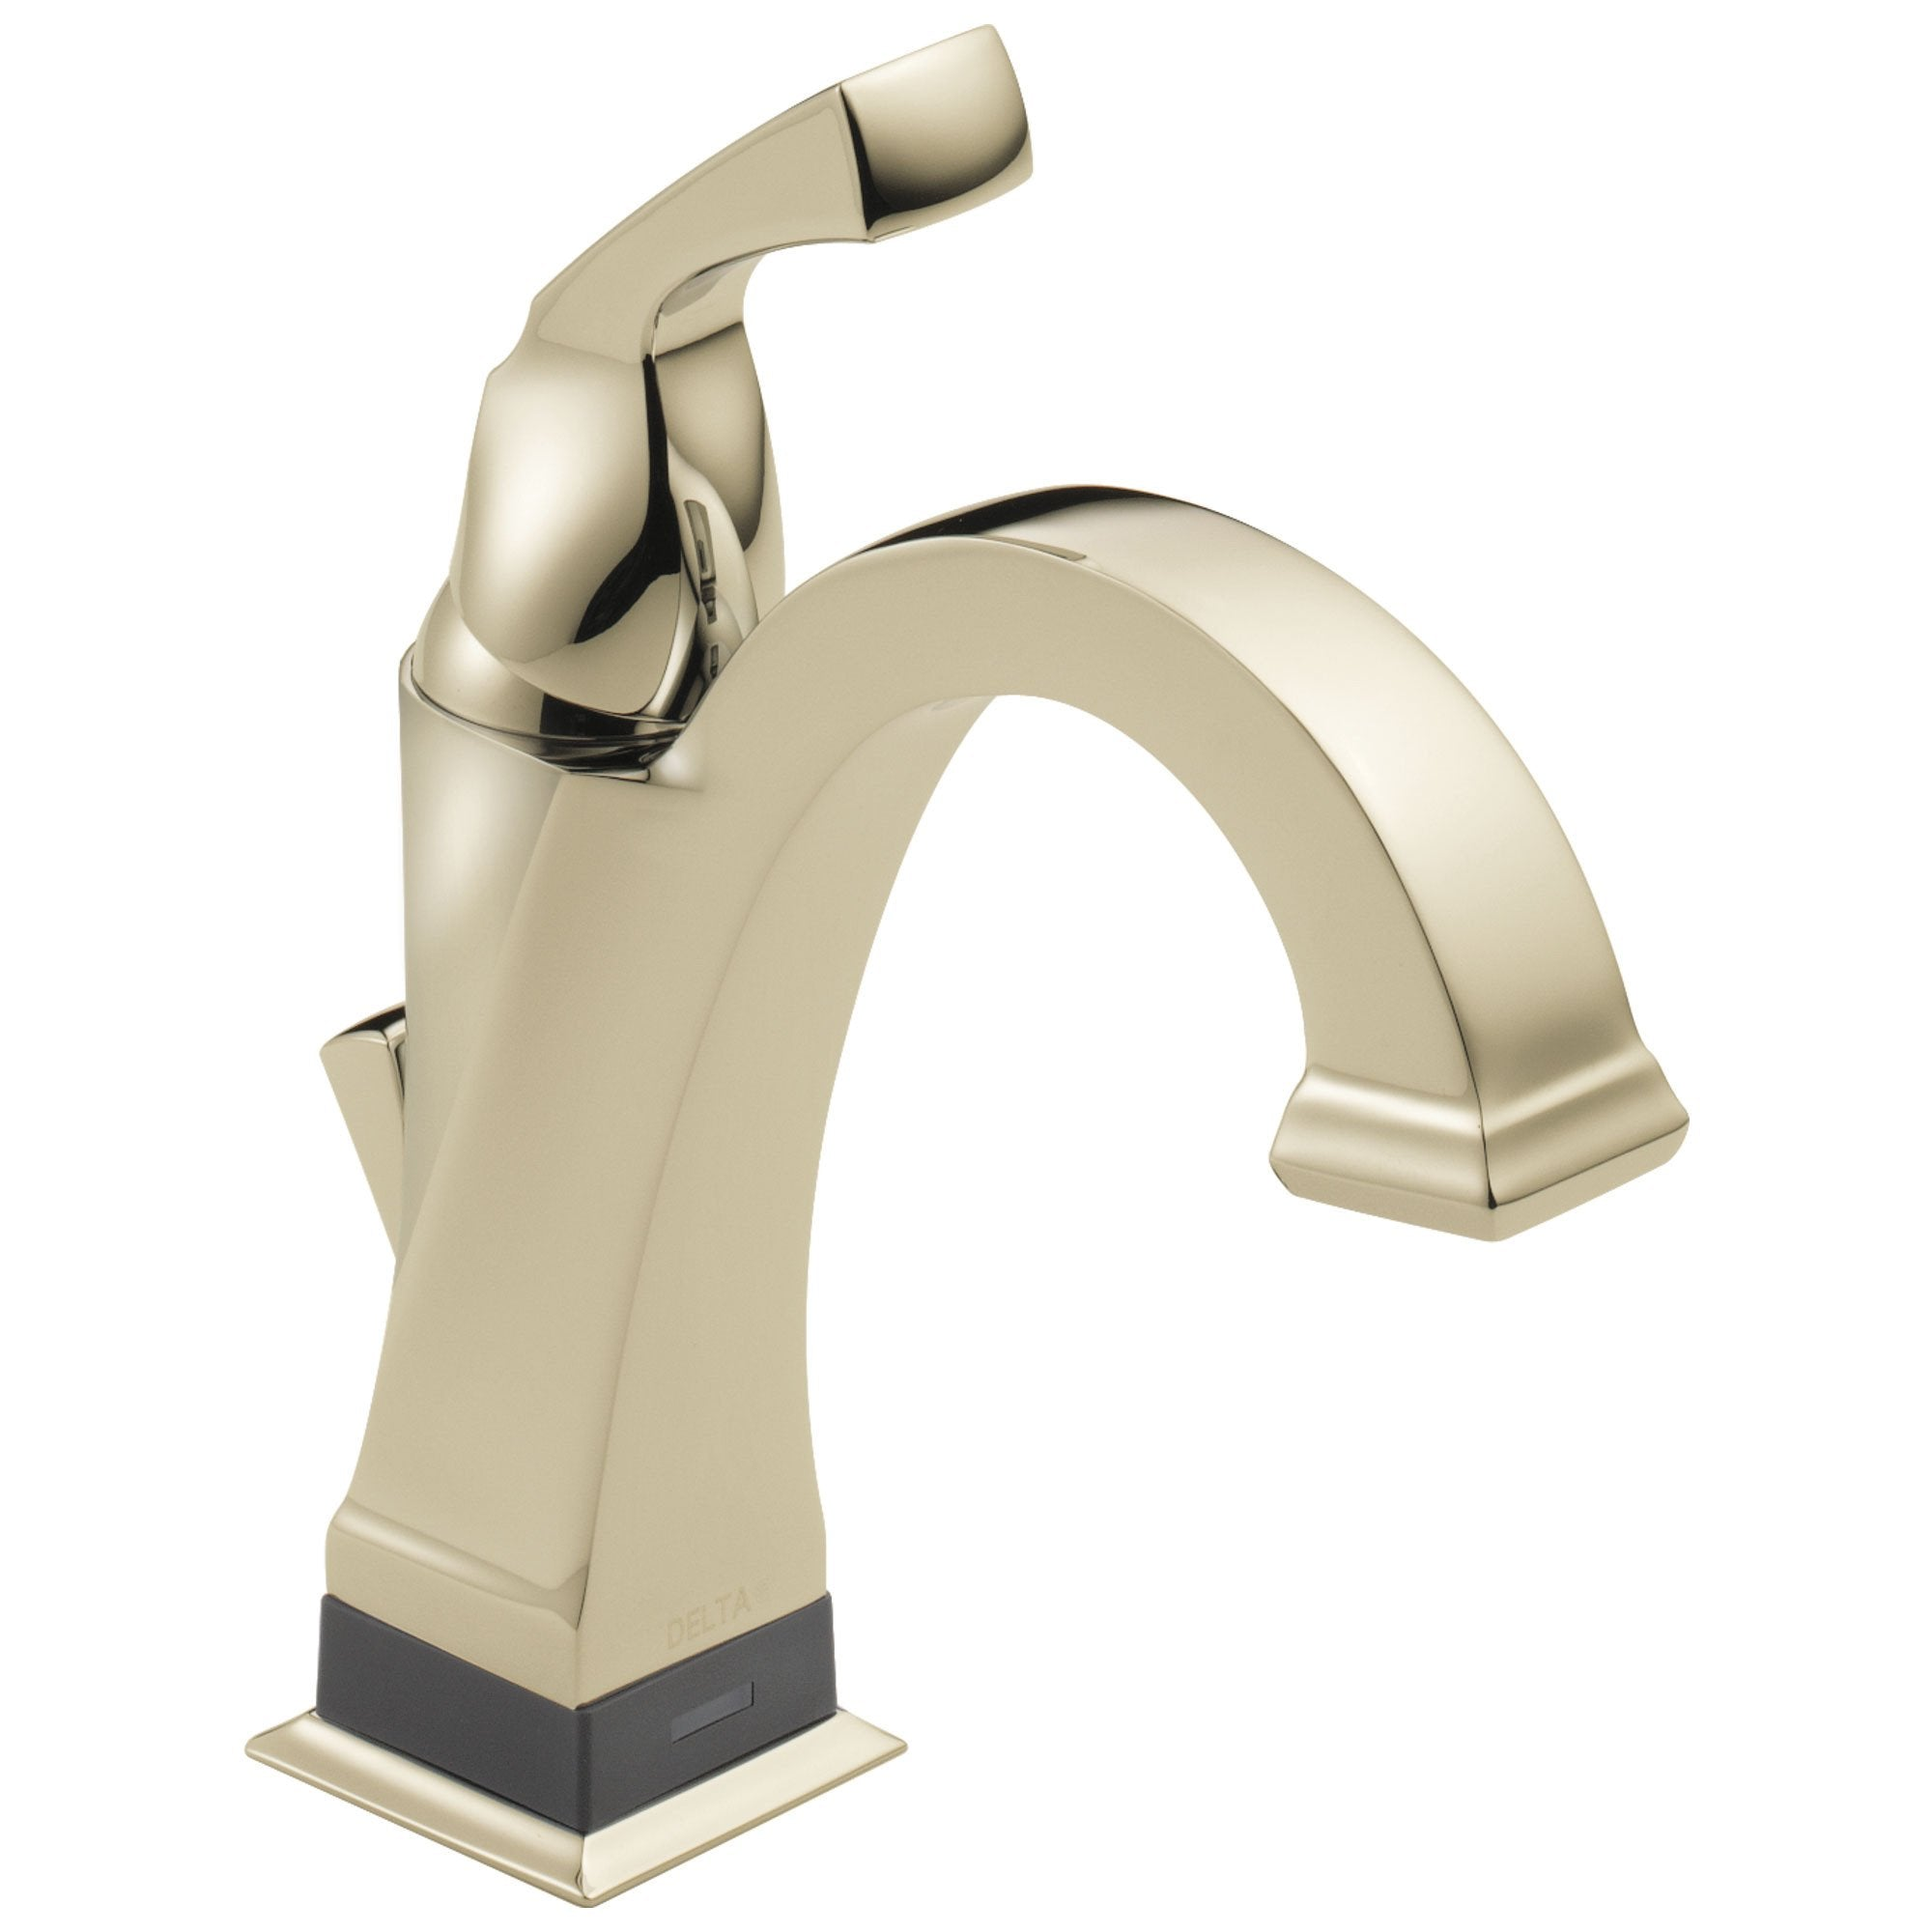 Delta Dryden Collection Polished Nickel Finish Electronic Single Handle Bathroom Sink Faucet with Touch2Oxt Technology 731007